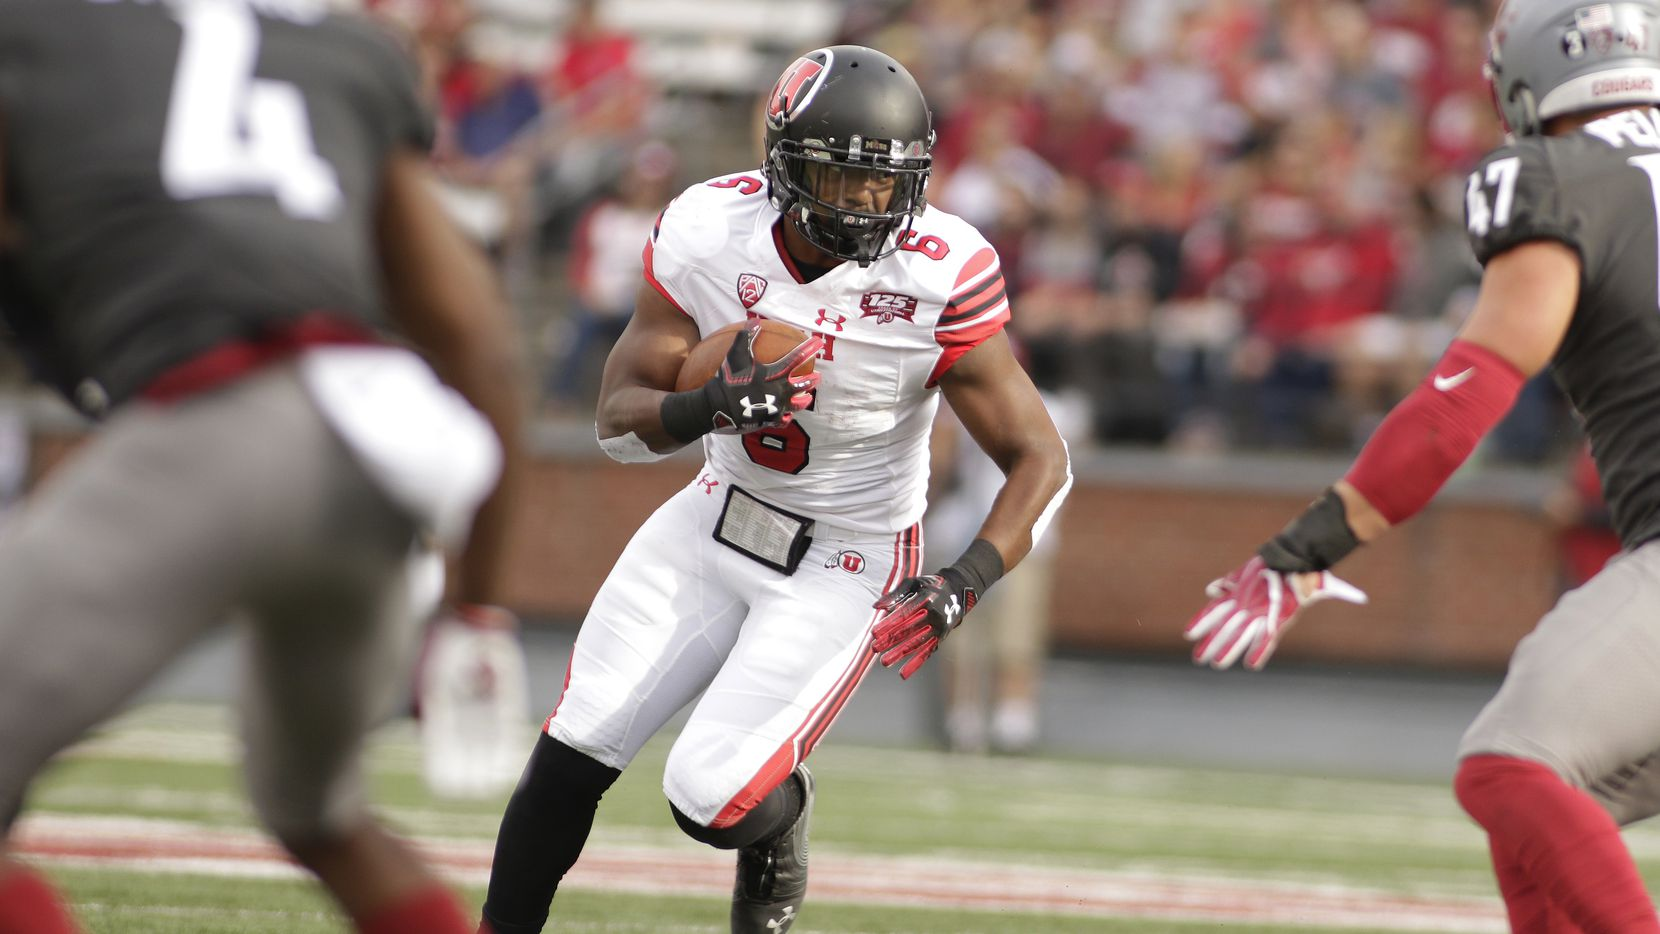 FILE - Utah running back Armand Shyne (6) runs with the ball during the first half of an NCAA college football game against Washington State in Pullman, Wash., Saturday, Sept. 29, 2018. (AP Photo/Young Kwak)